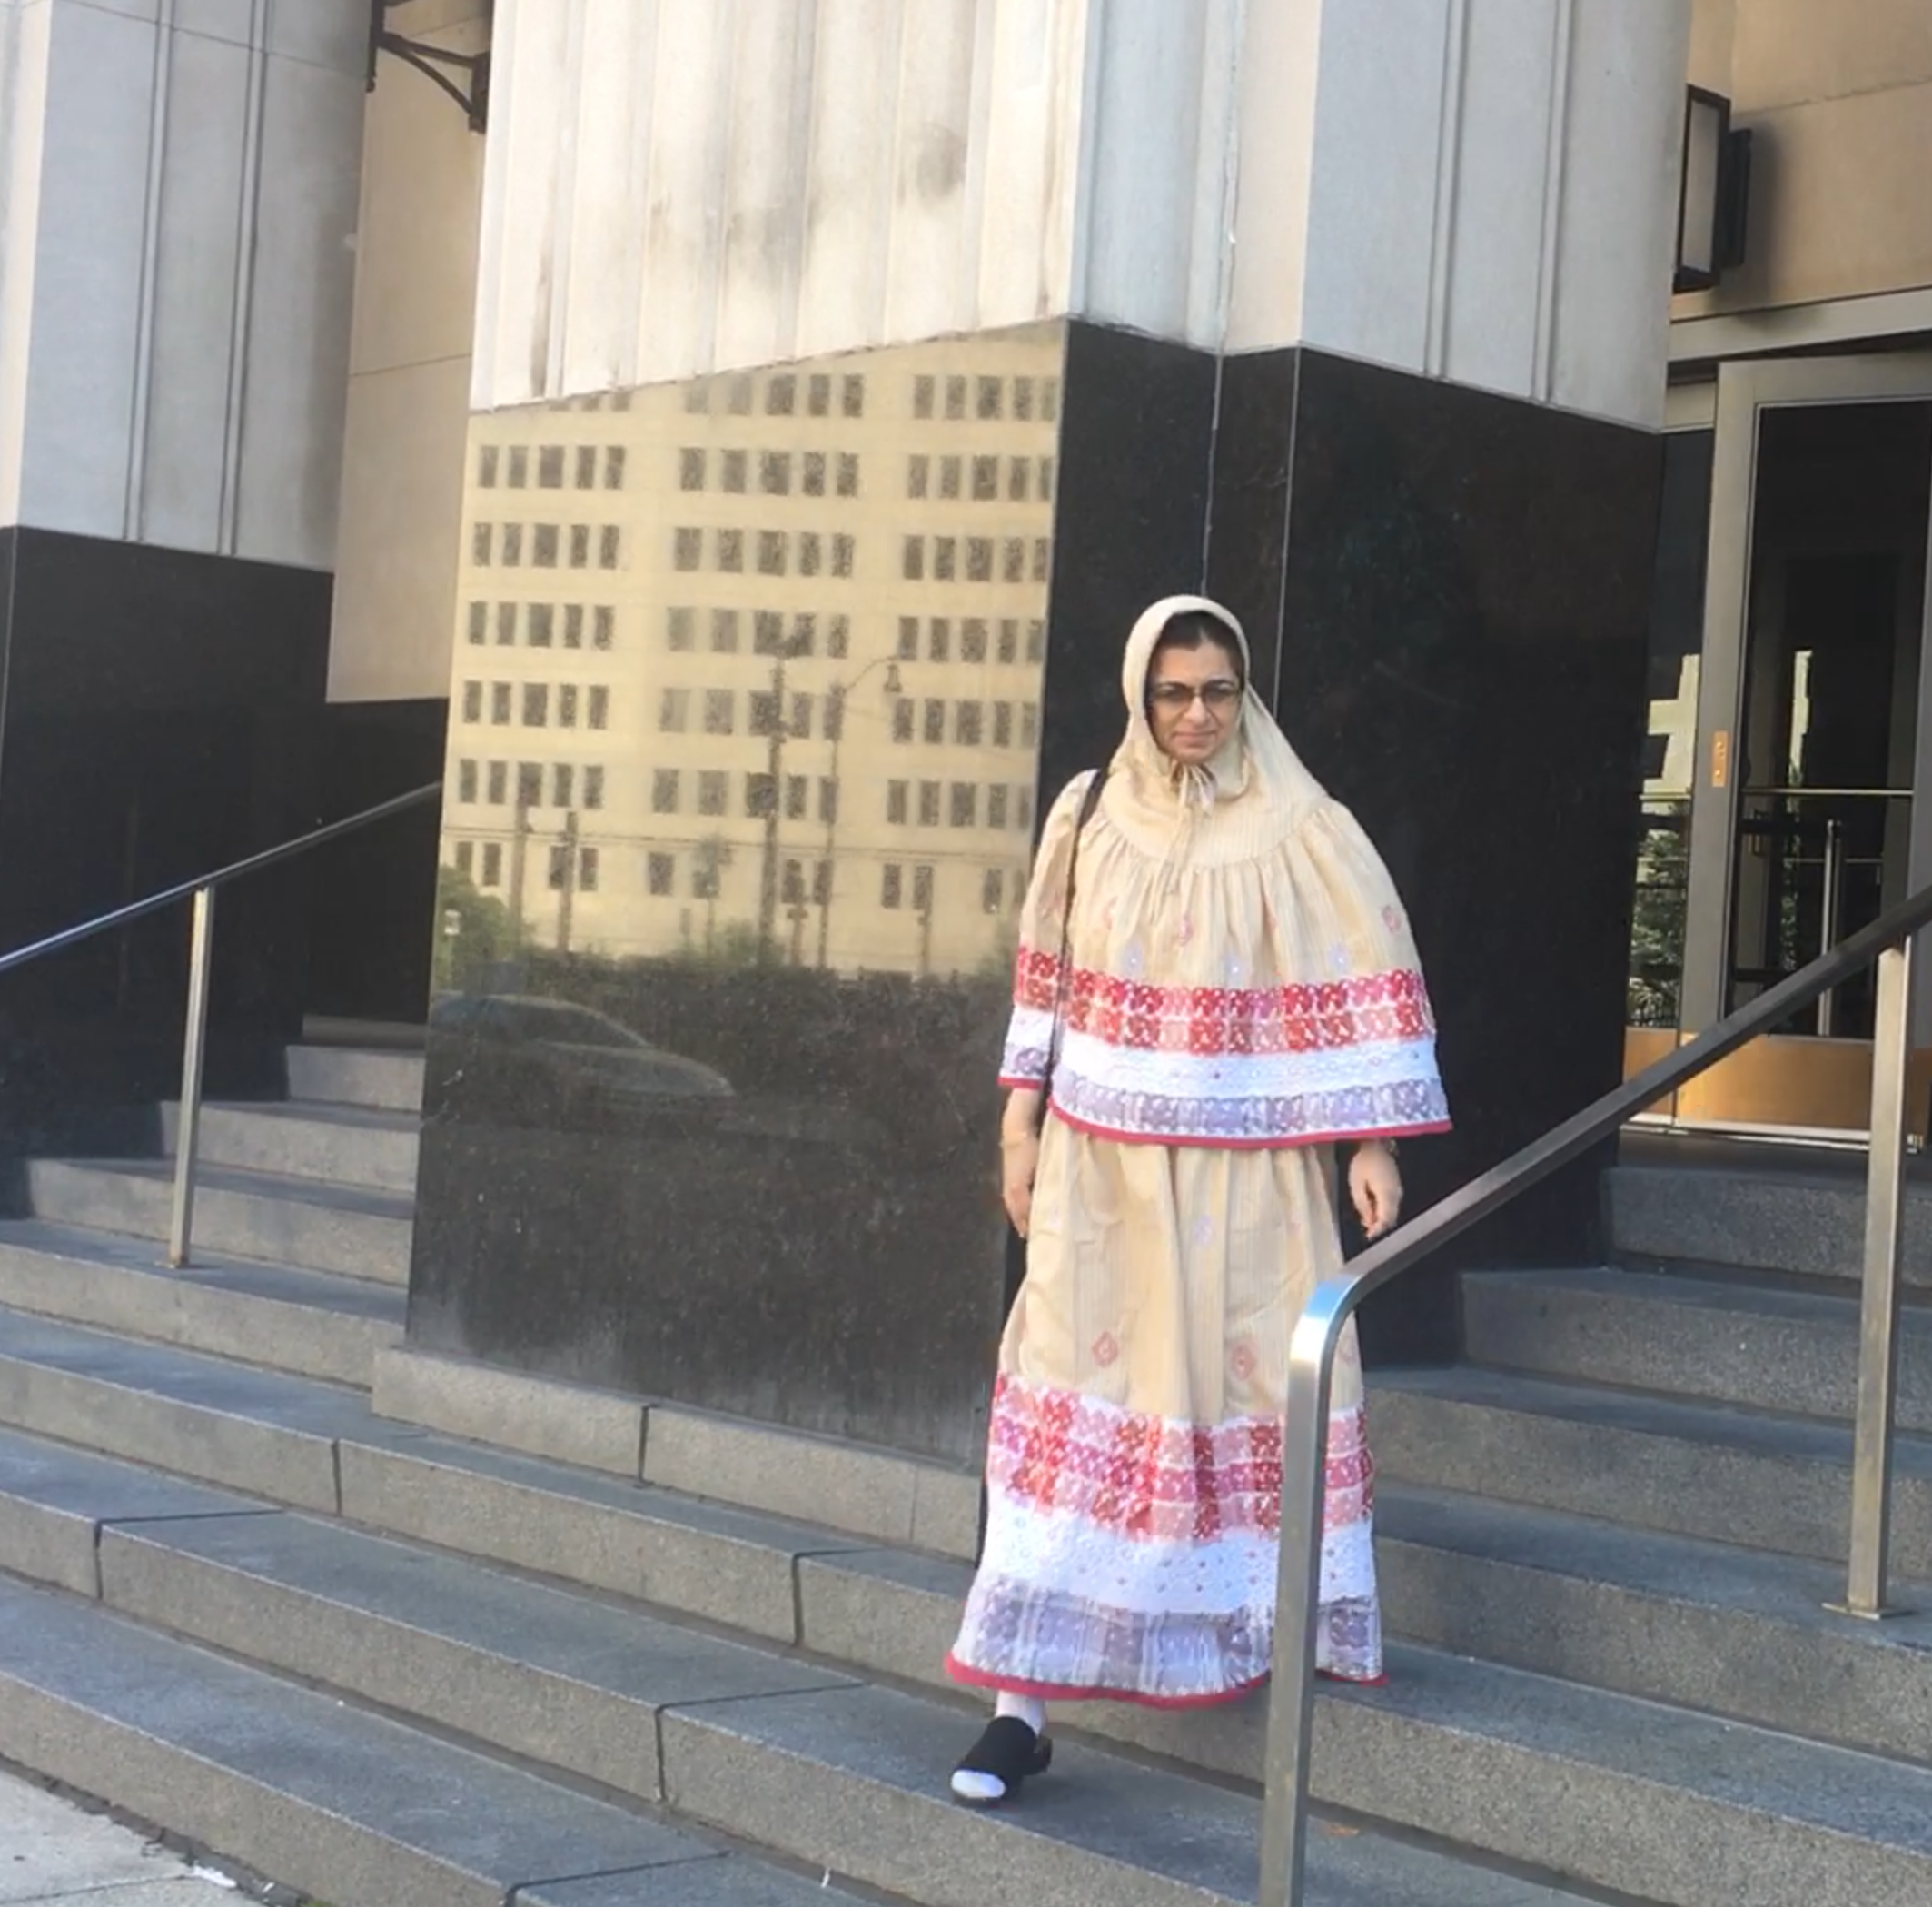 Judge dismisses key charges in genital mutilation case